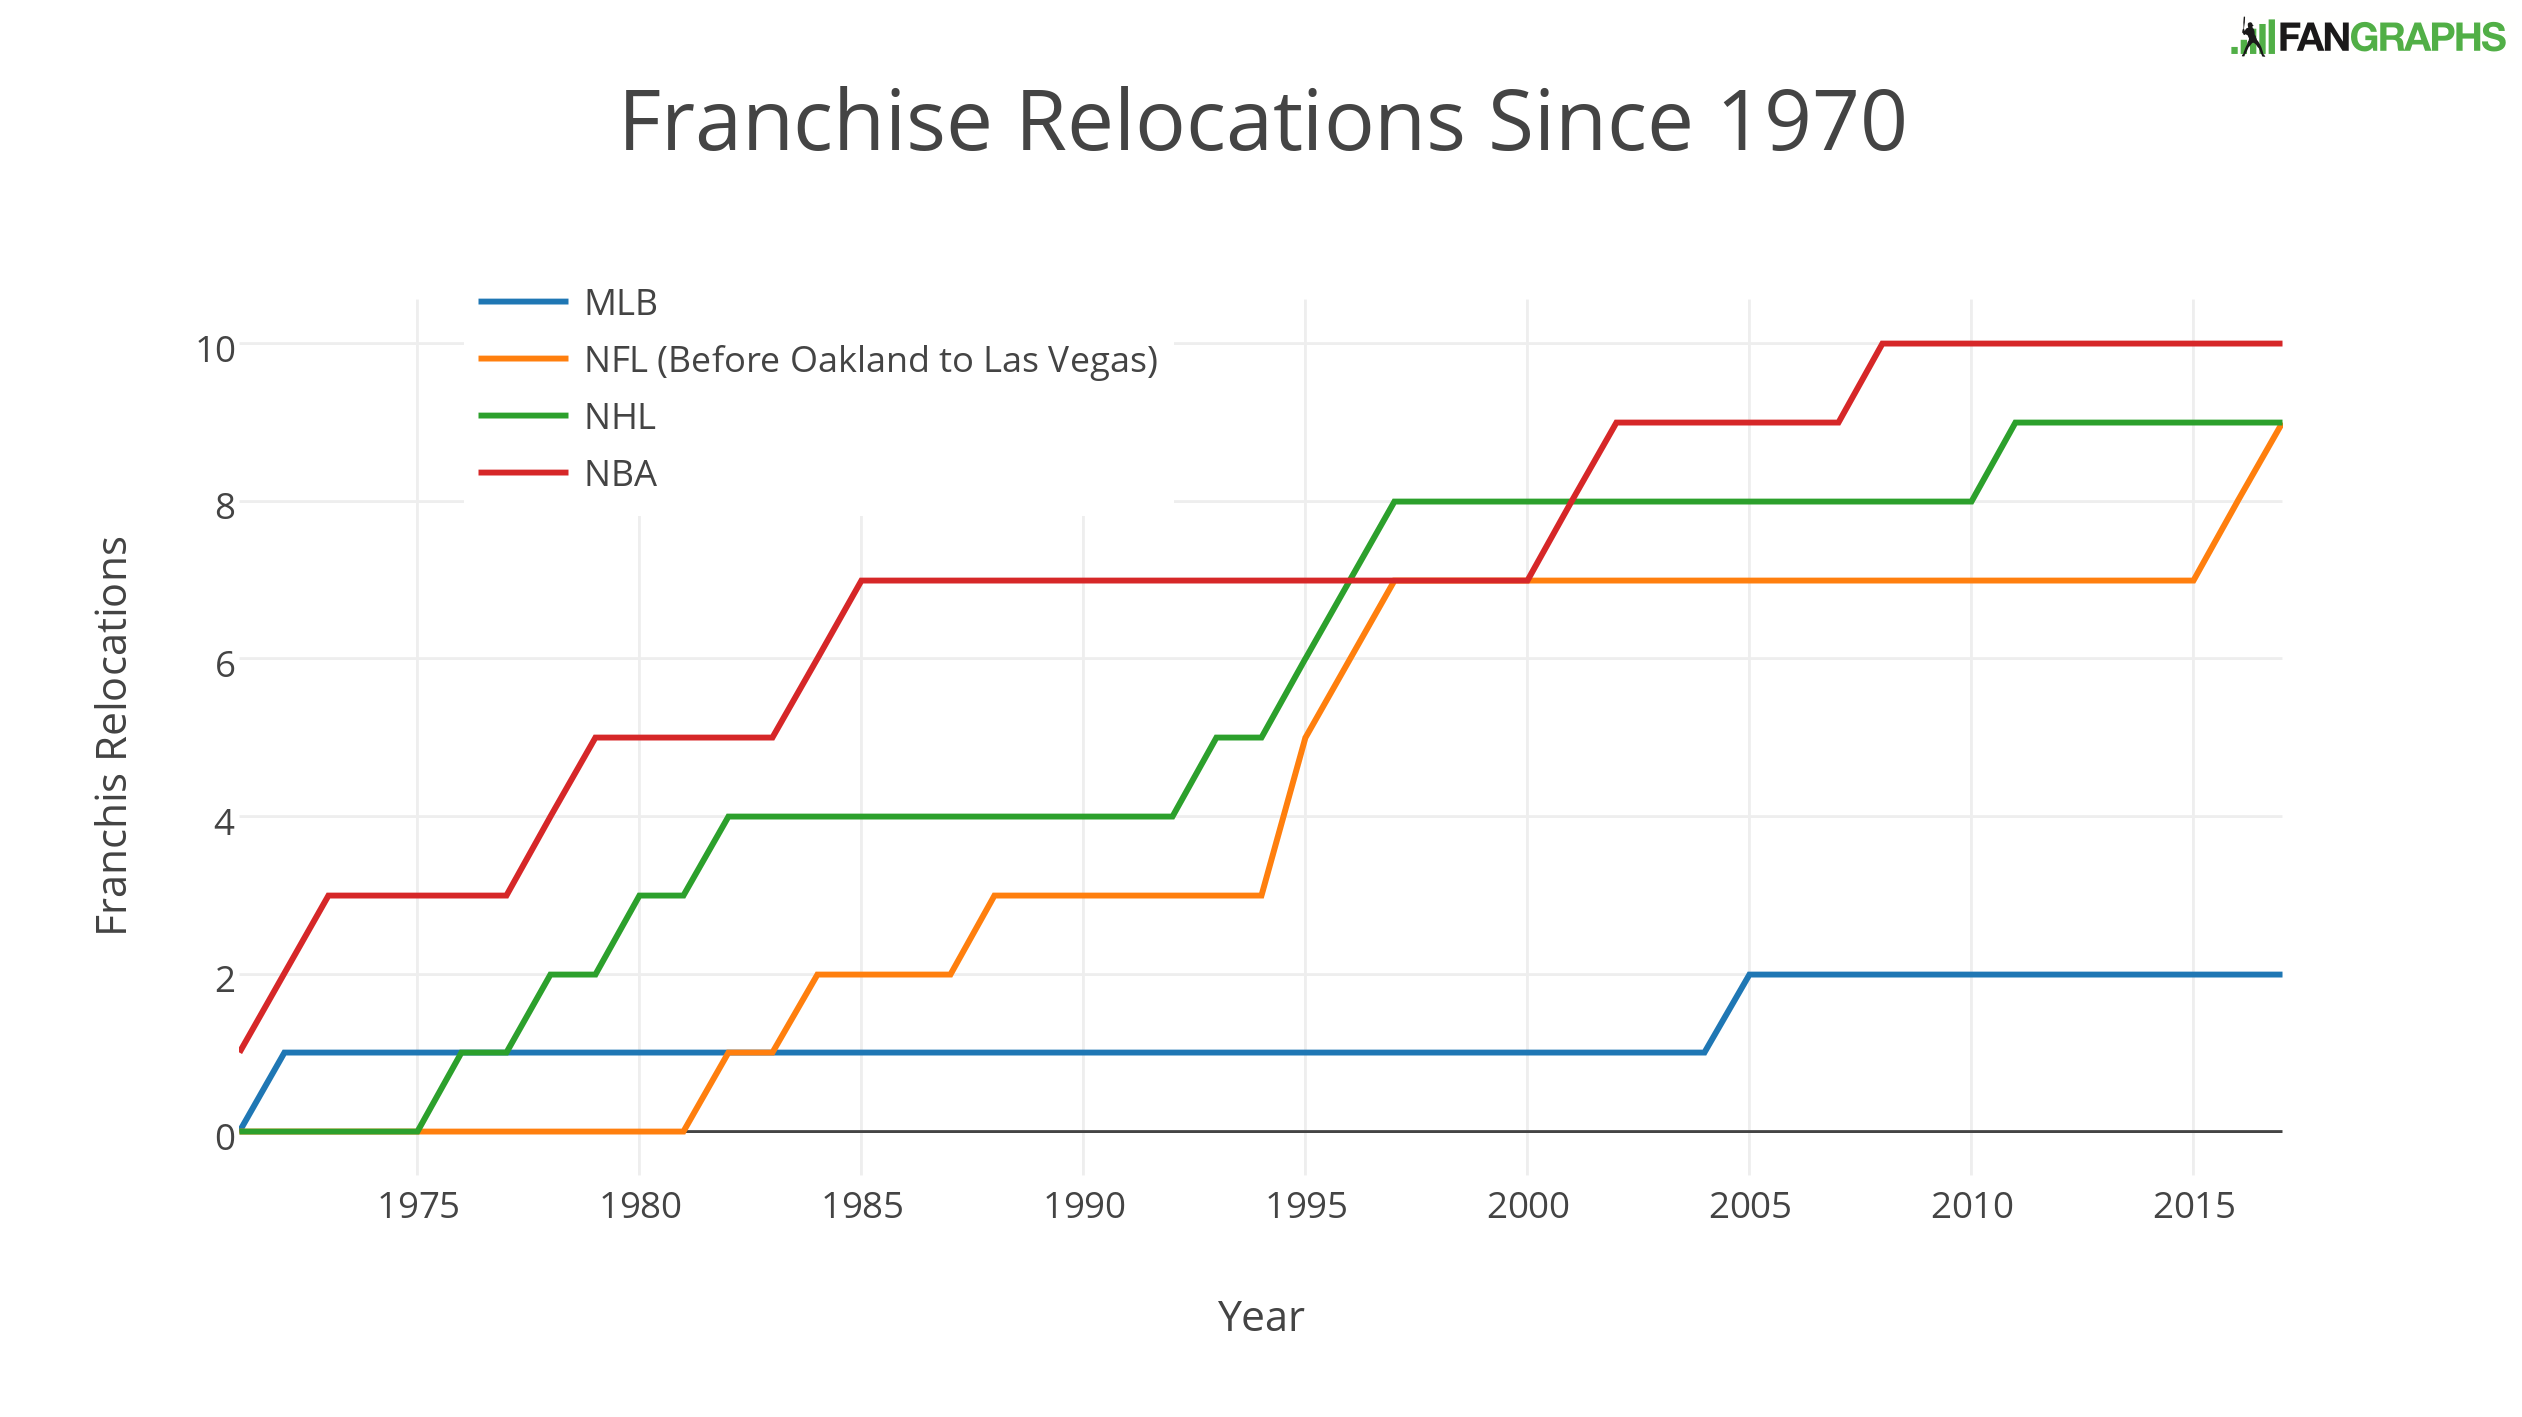 Relocation Less Common in MLB Than NFL, Other Leagues